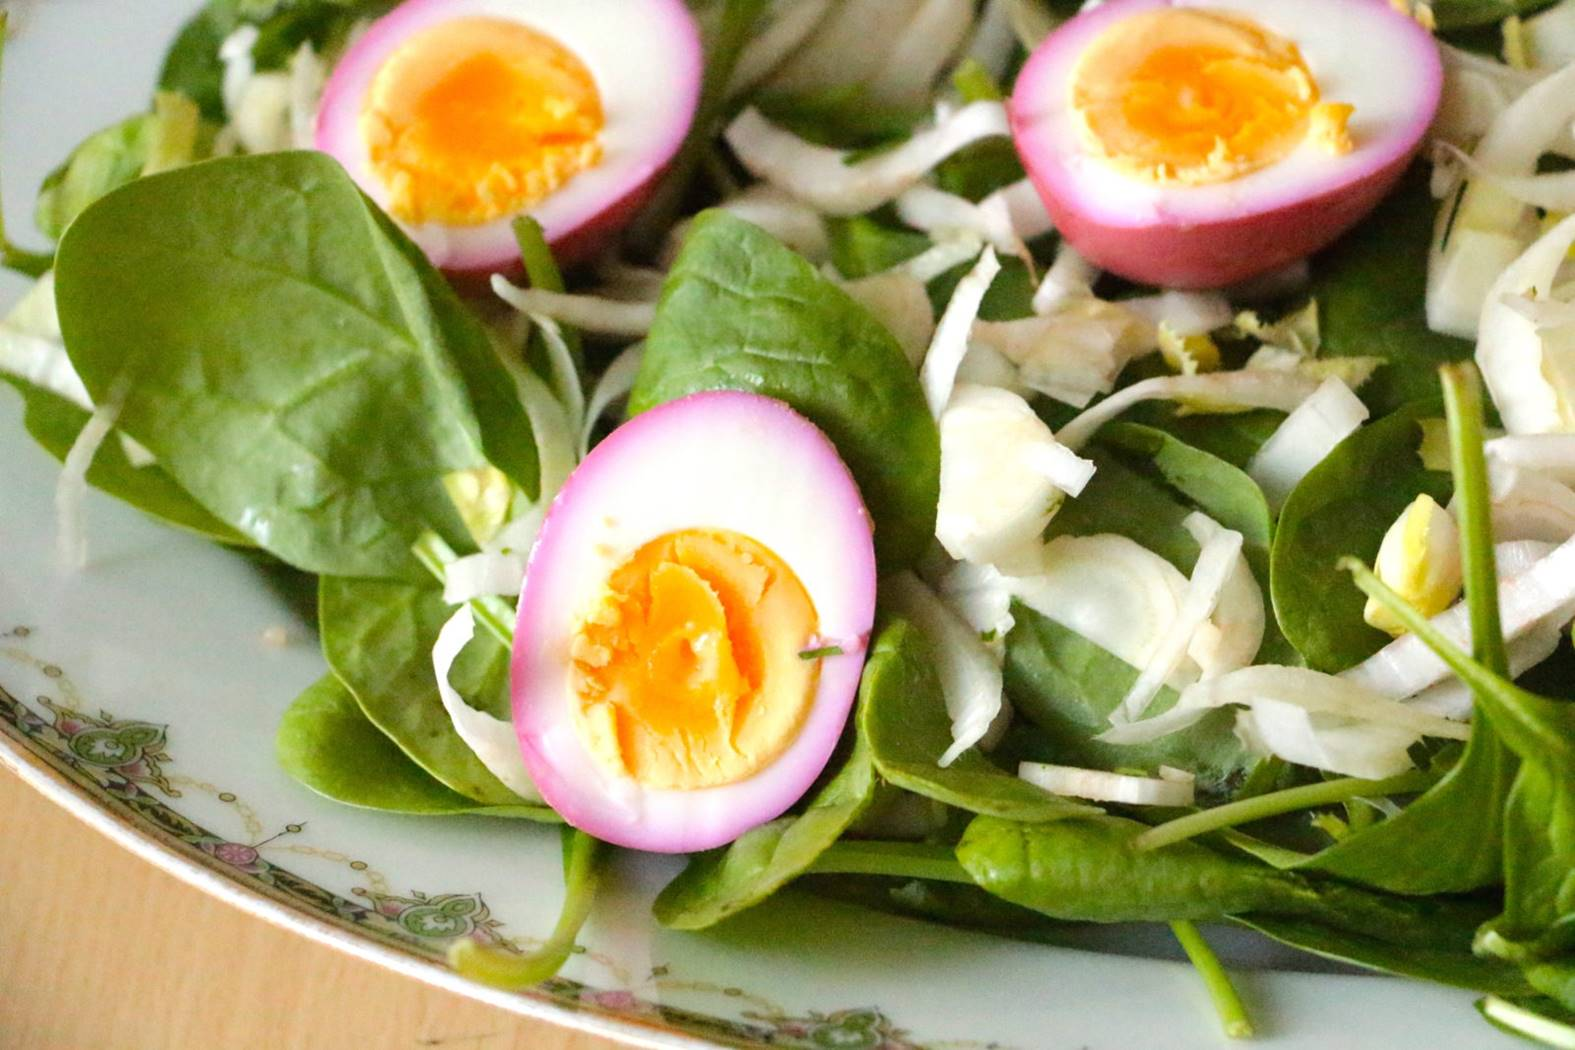 Toss eggs onto salads to increase Vitamin E absorption